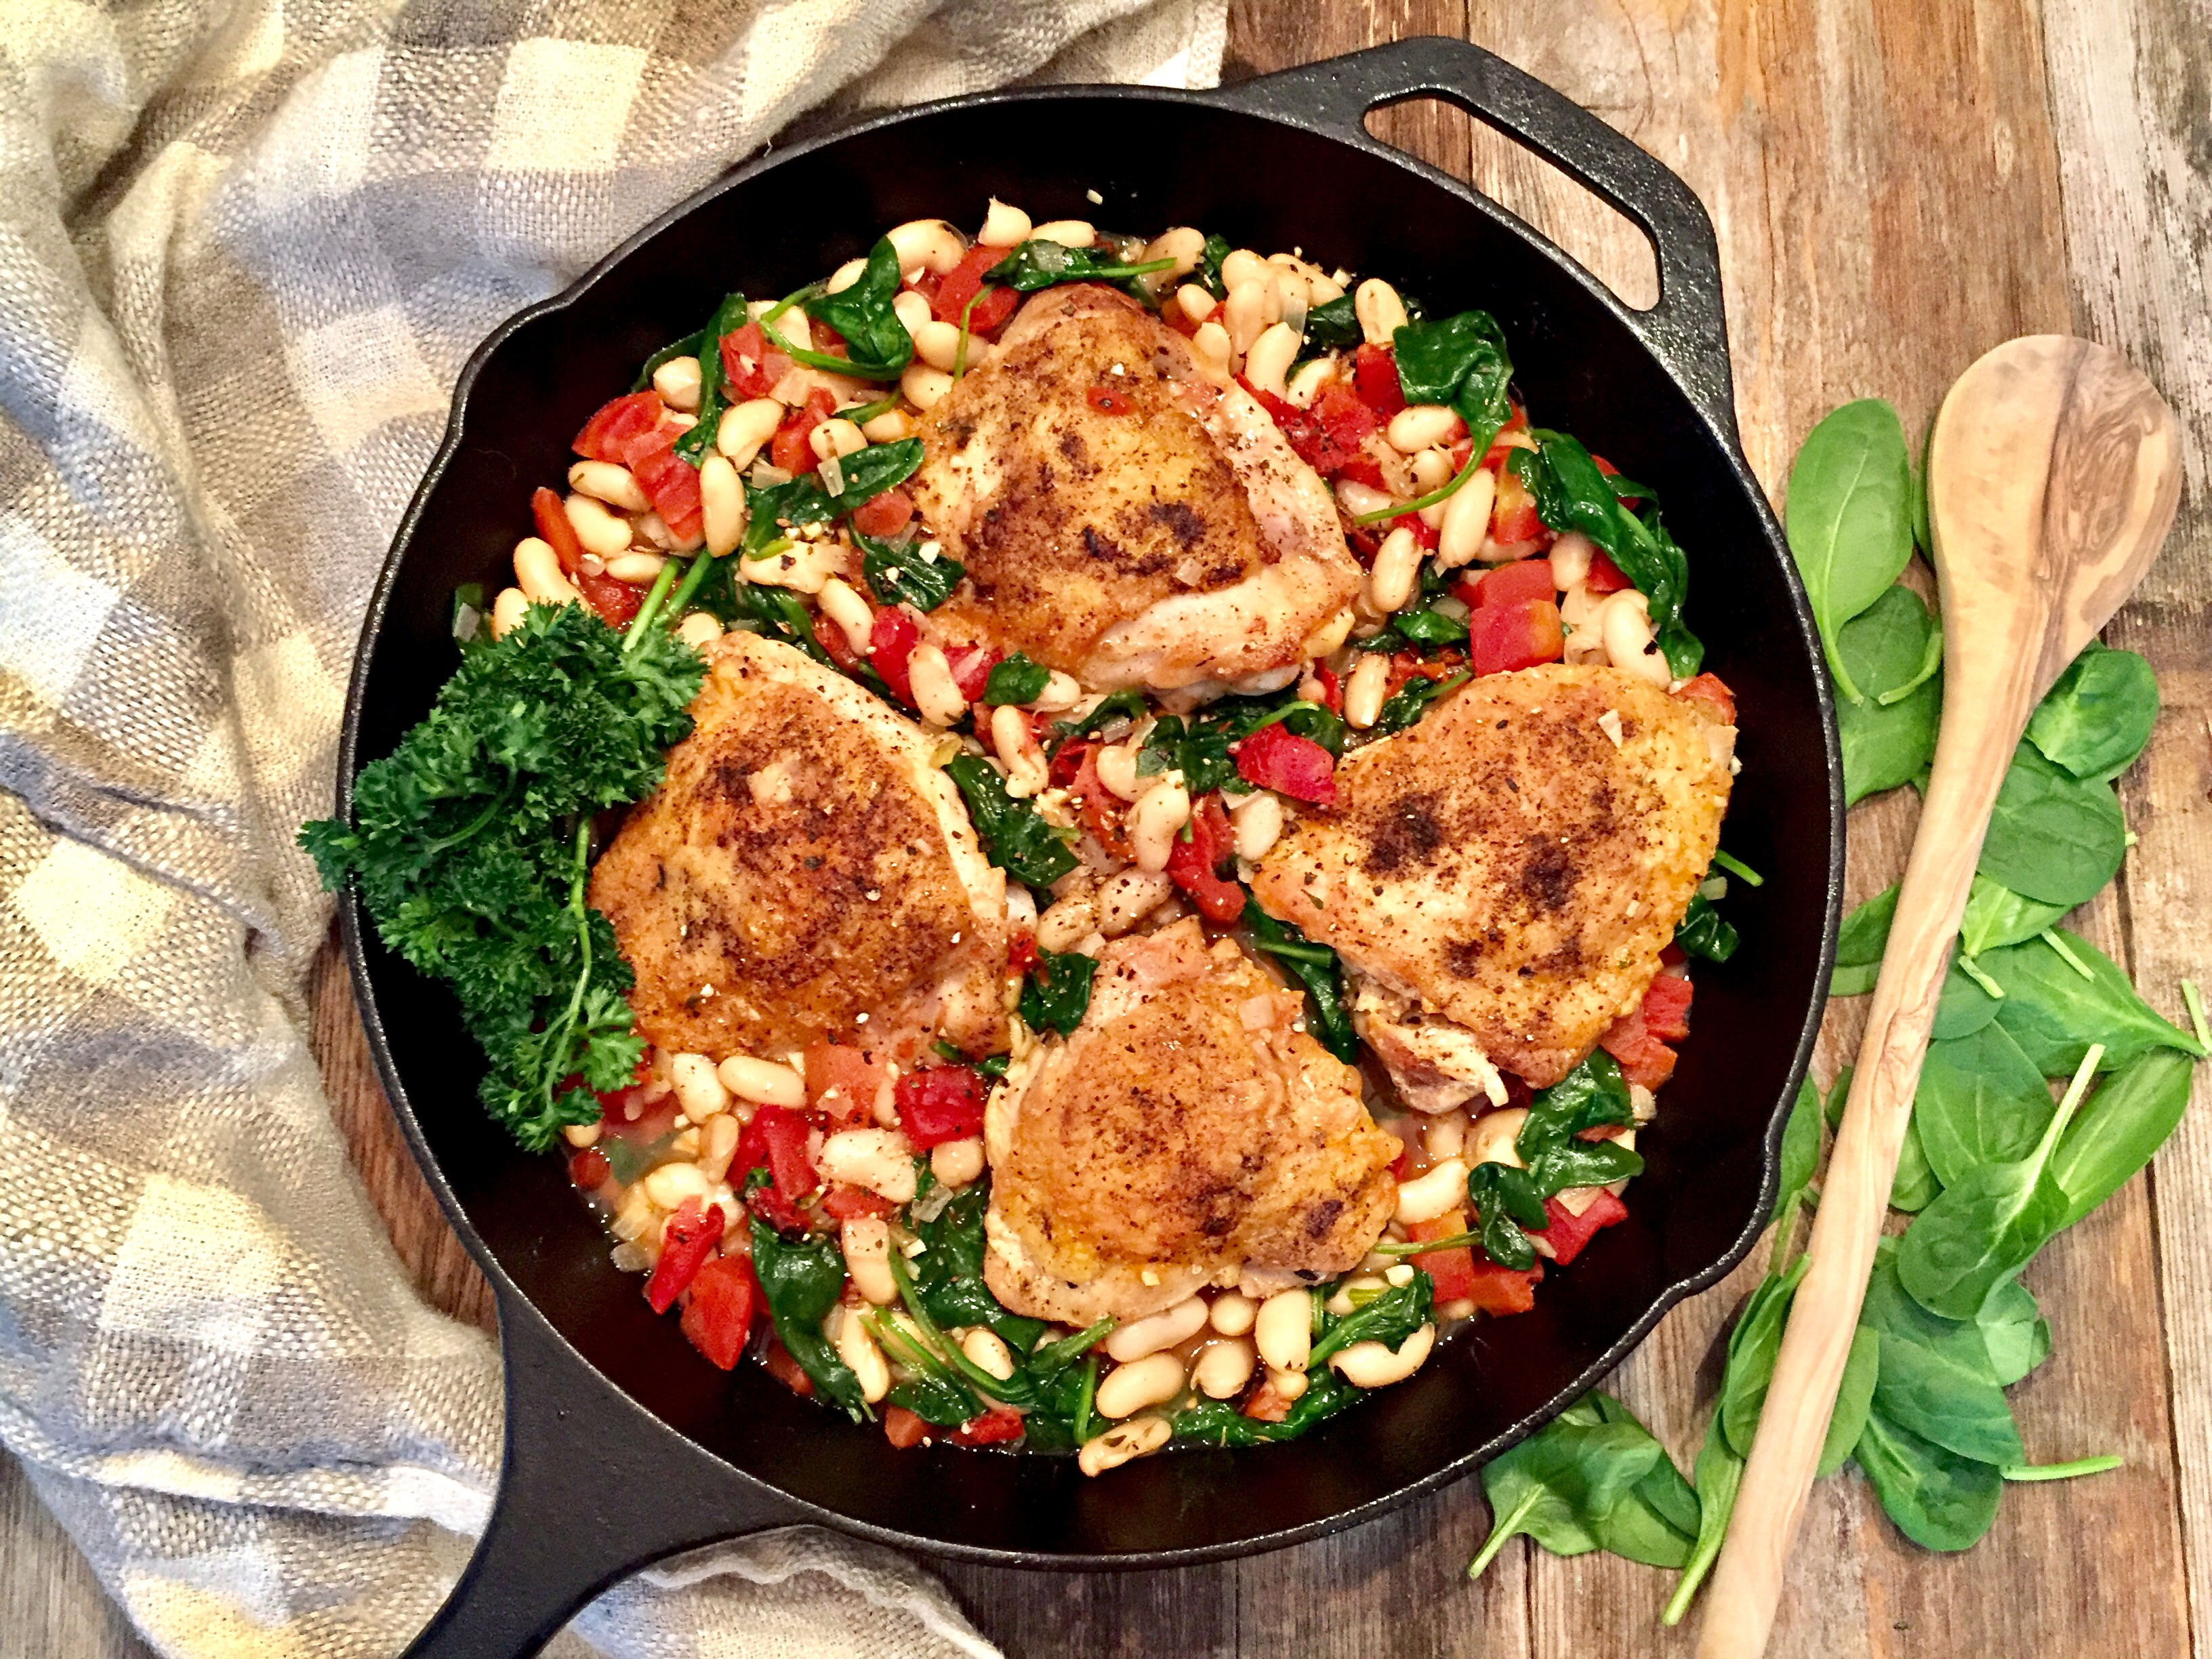 White Bean And Spinach Braised Chicken Thighs One Pot Dish A Hint Of Wine